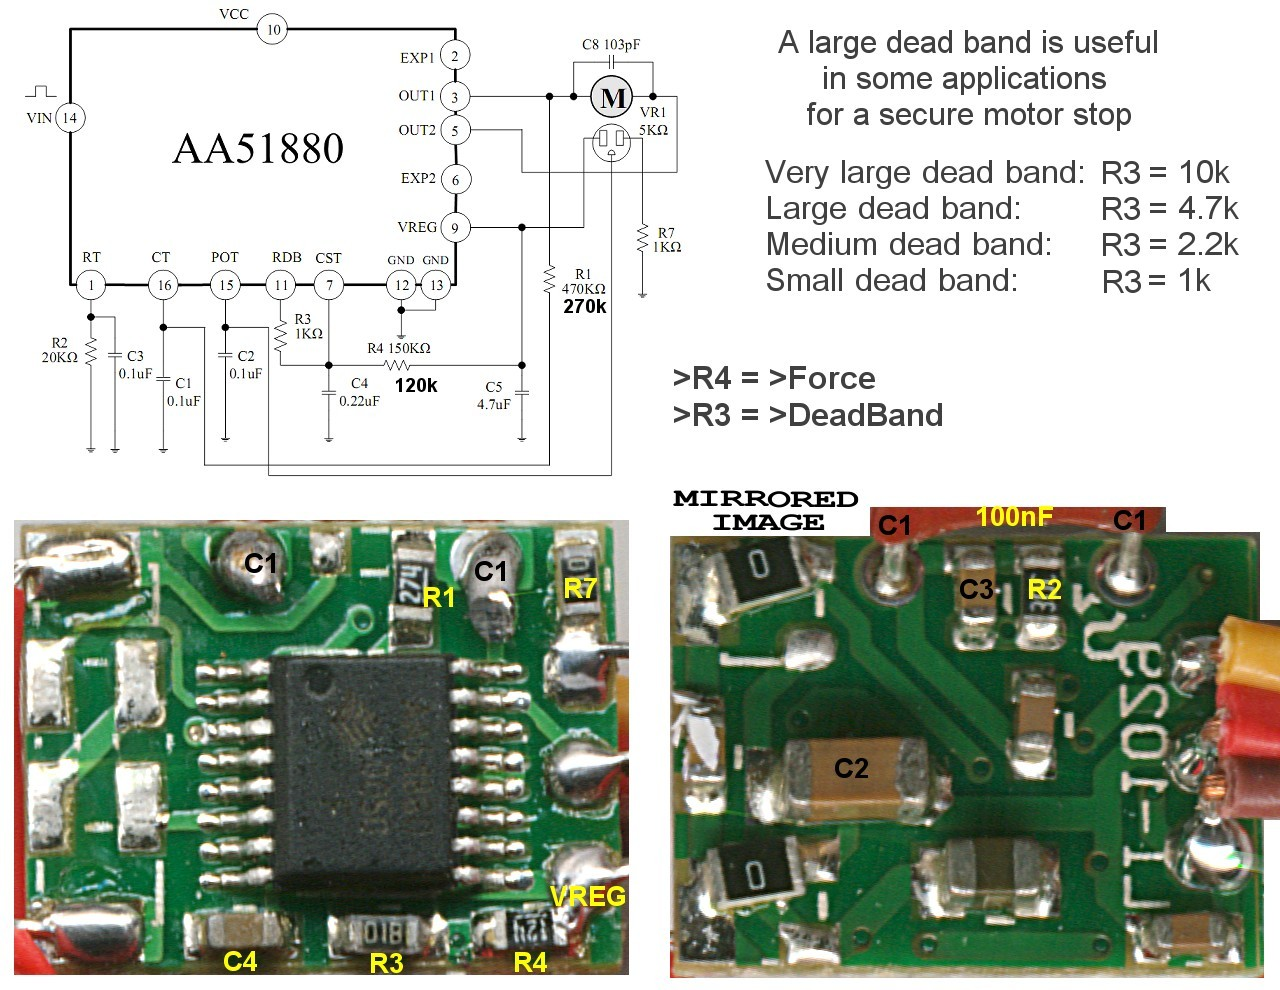 Motors Theremino 12 Lead 480 Volt Motor Wiring Diagram The Left Image Is A Schematic And Functional One On Right Indicates Modifications To Do Where Put Resistors